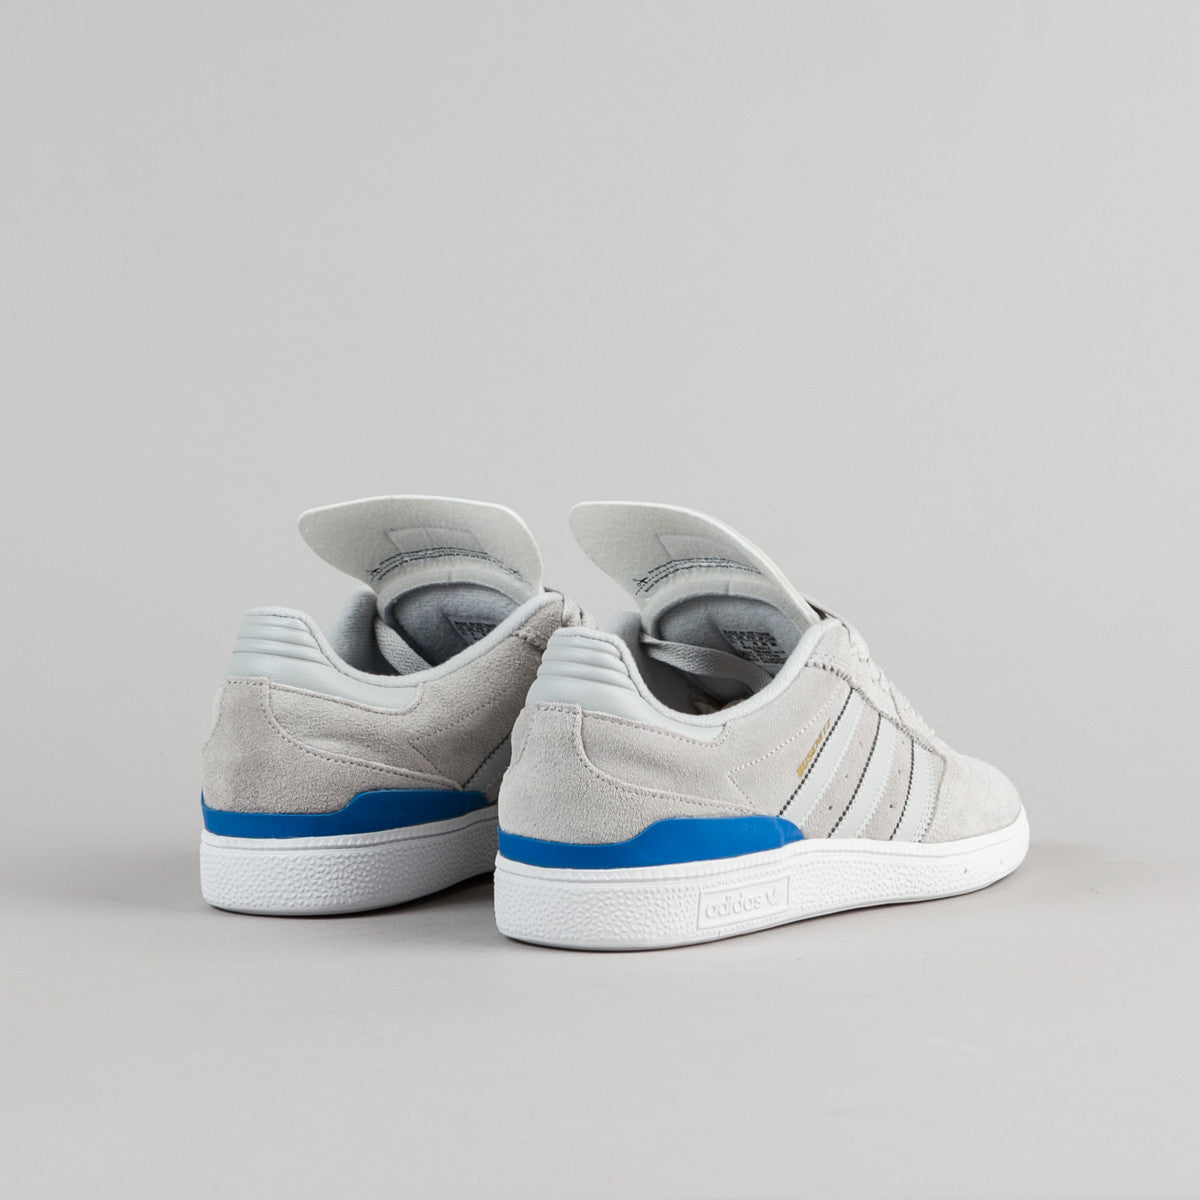 Adidas Busenitz Shoes - Solid Grey / Solid Grey / Bluebird